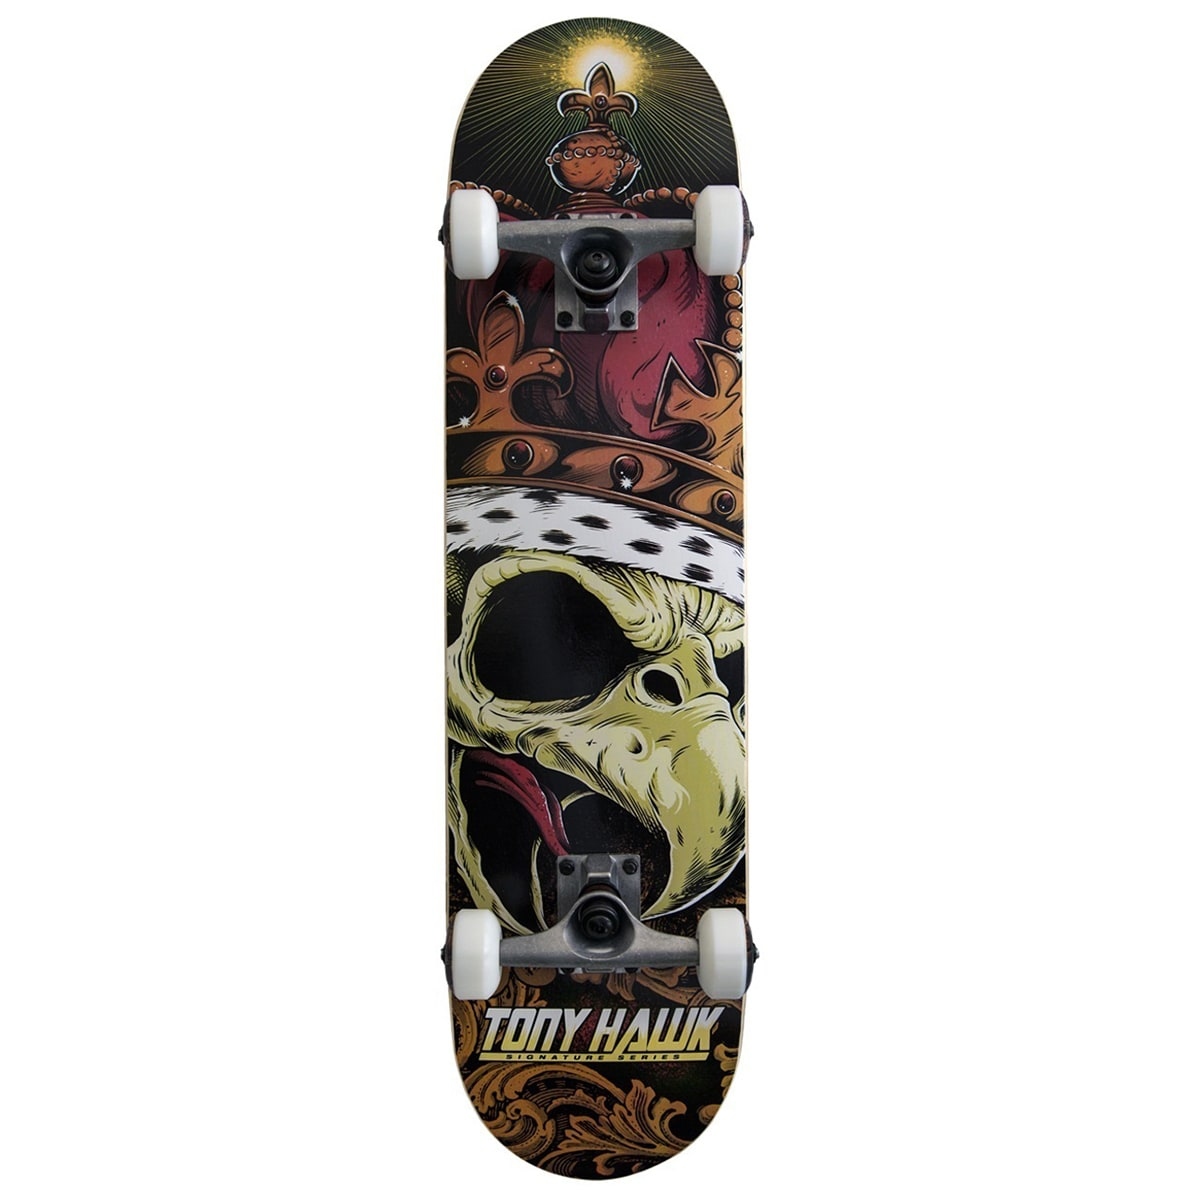 Tony hawk 540 series skateboard crowned complete for Cheap decking boards for sale